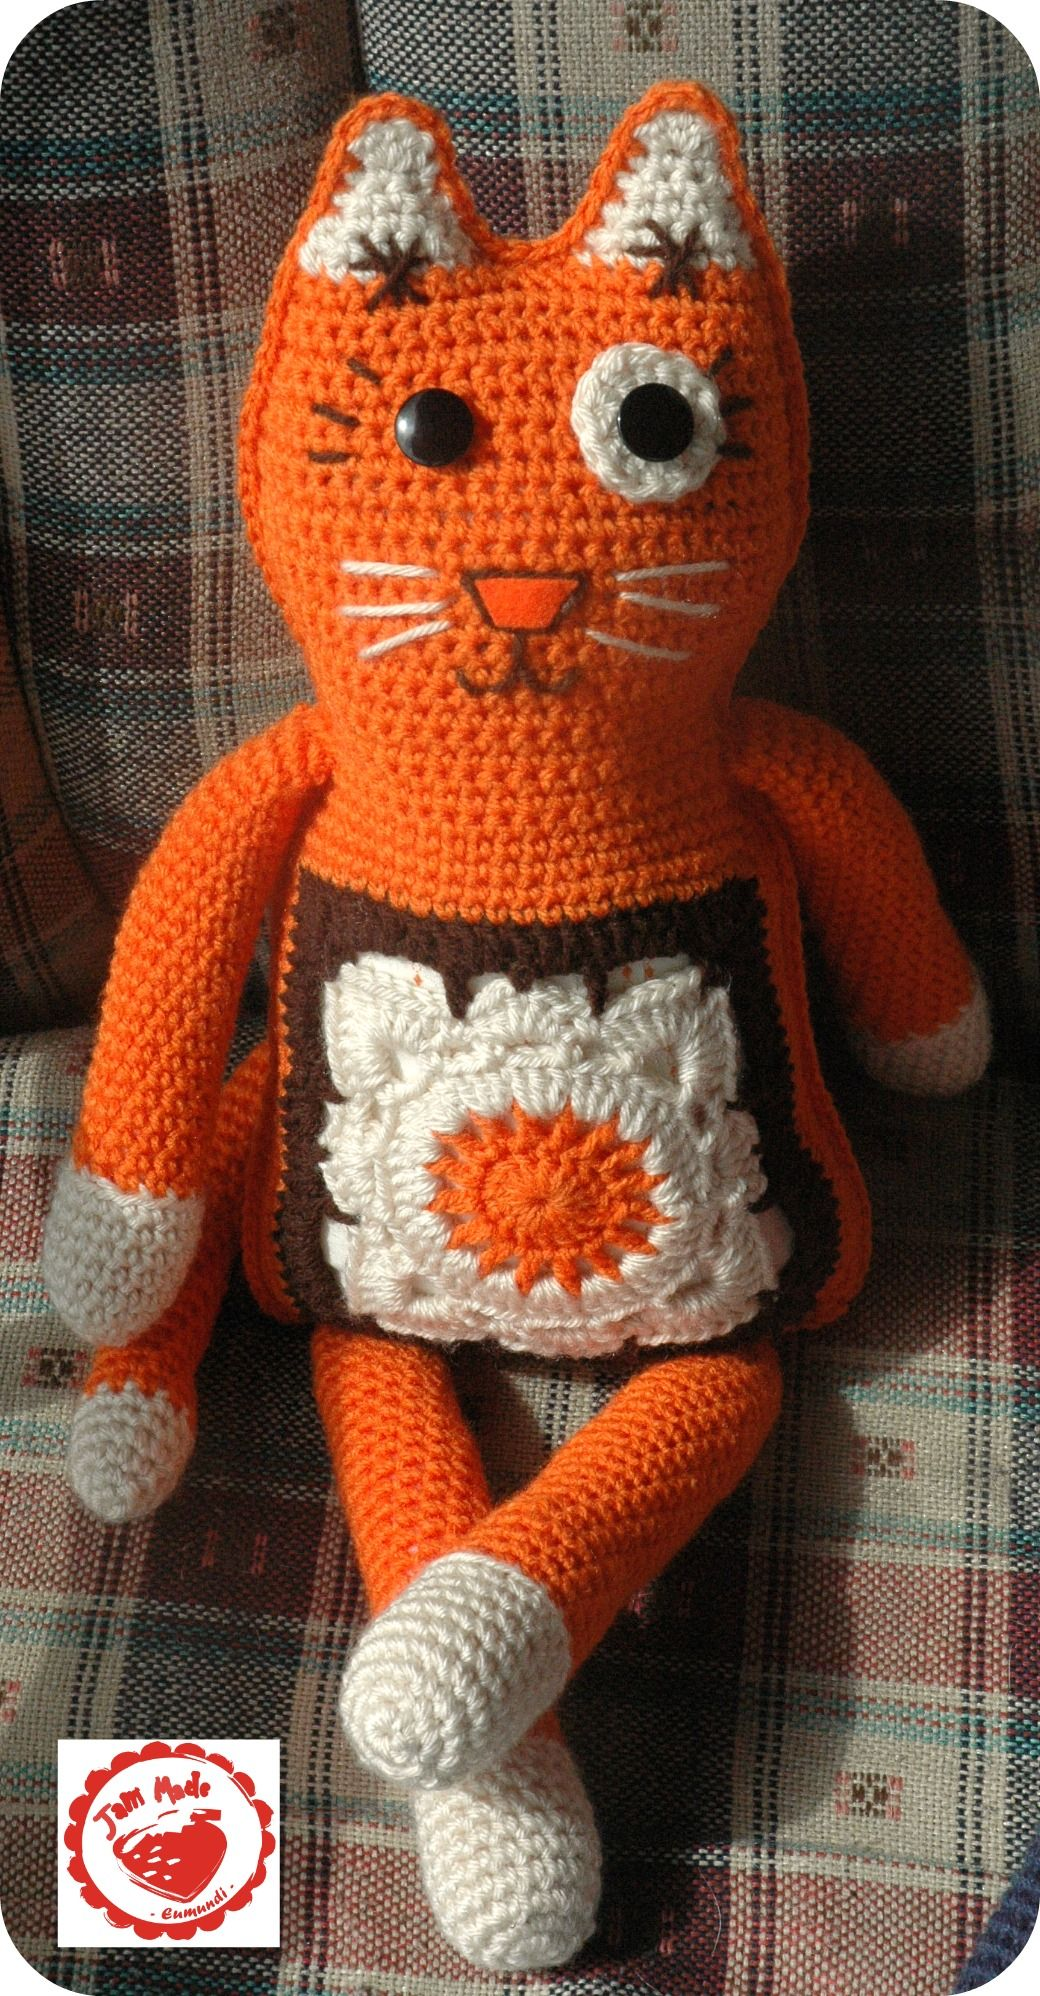 Jam made willow cat | Craft Fair Ideas | Pinterest | Häkeln